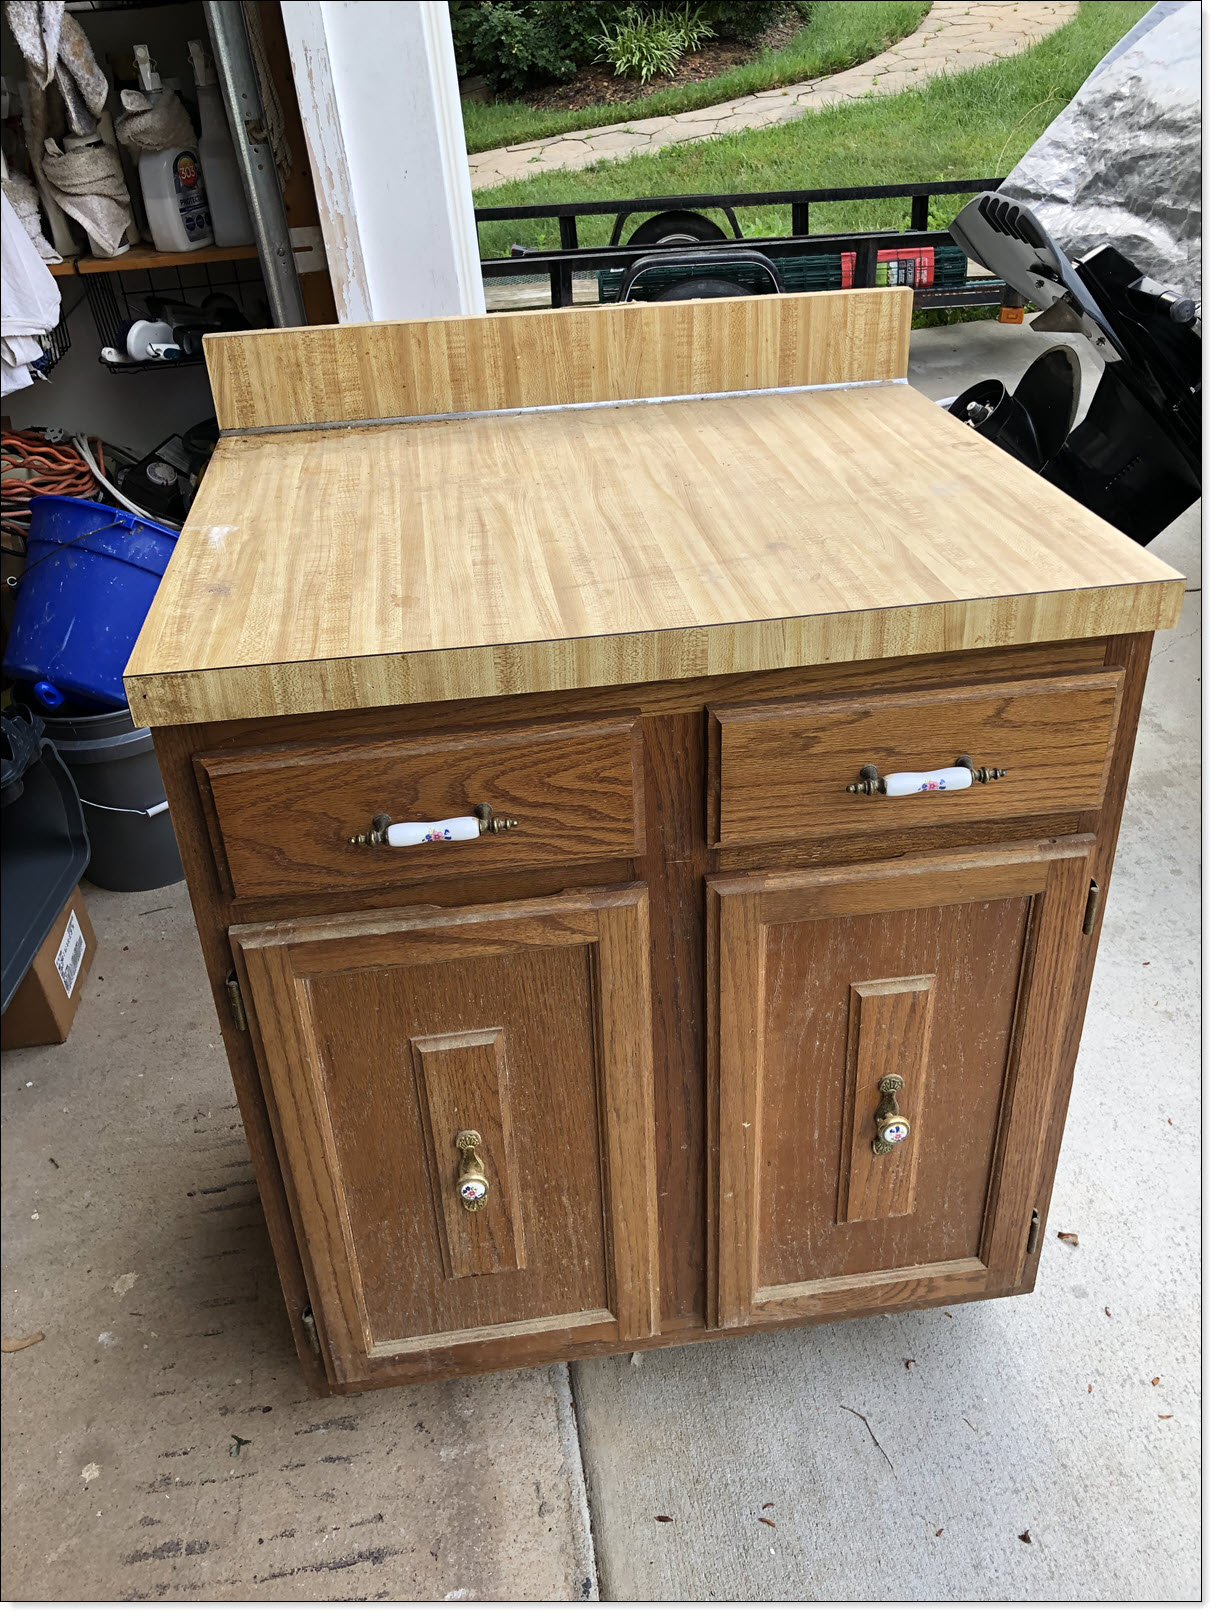 Using An Old Kitchen Cabinet for Chicken Coop